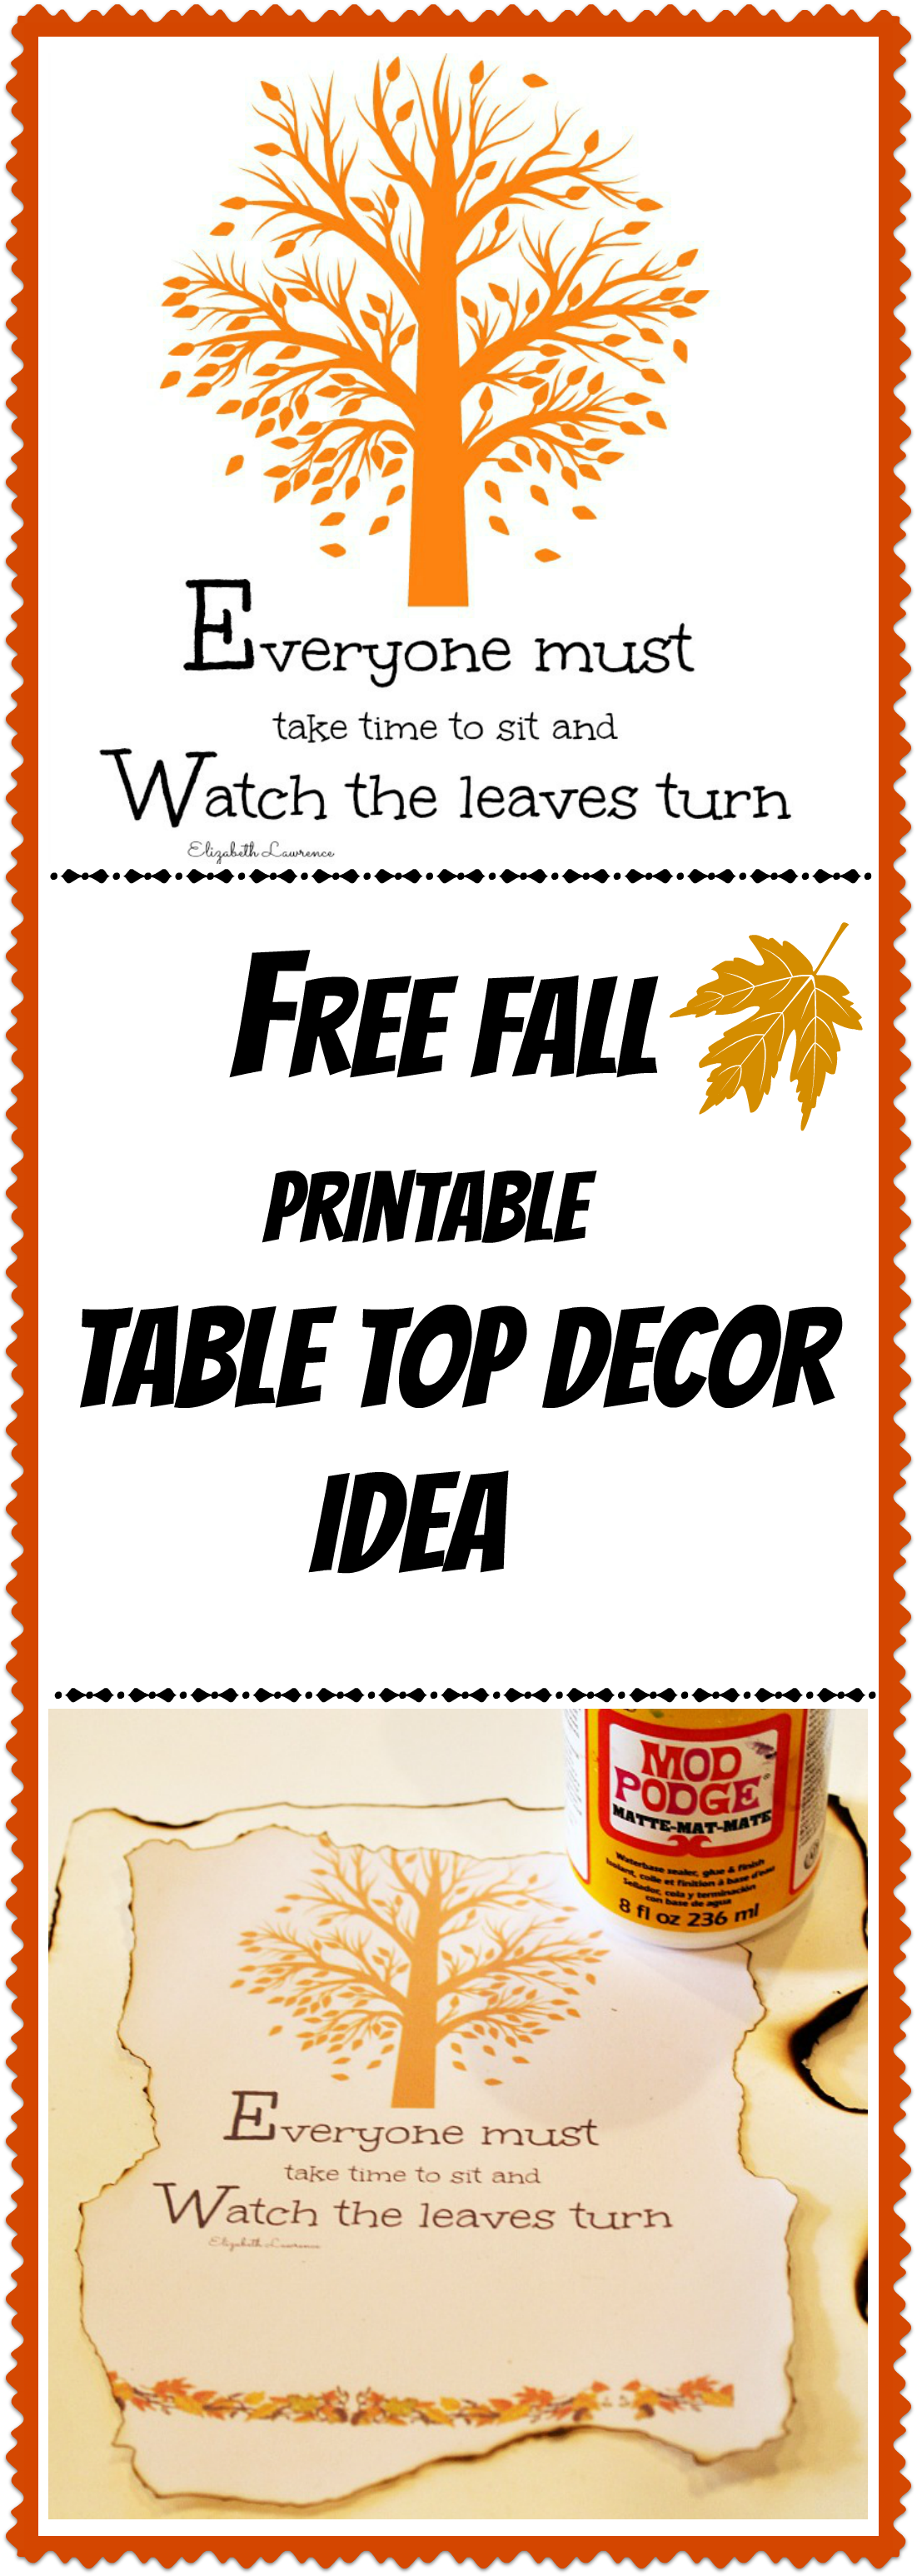 Free fall printable diy table top decor idea